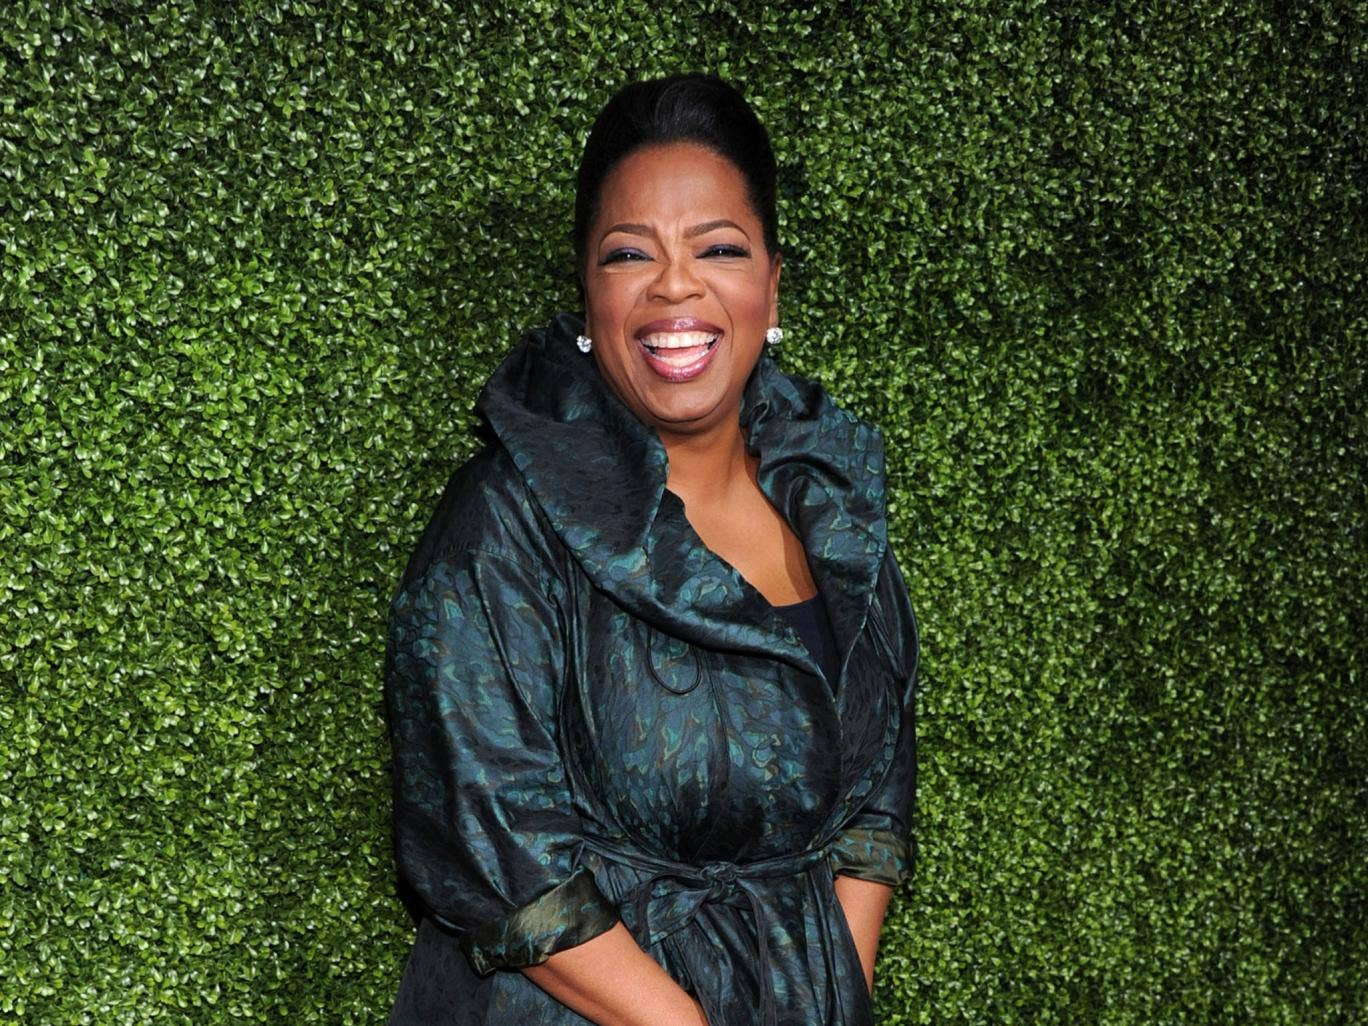 Oprah Winfrey said she was victimised at the Trois Pommes boutique in Zurich. The store's owner Trudie Goetz has apologised